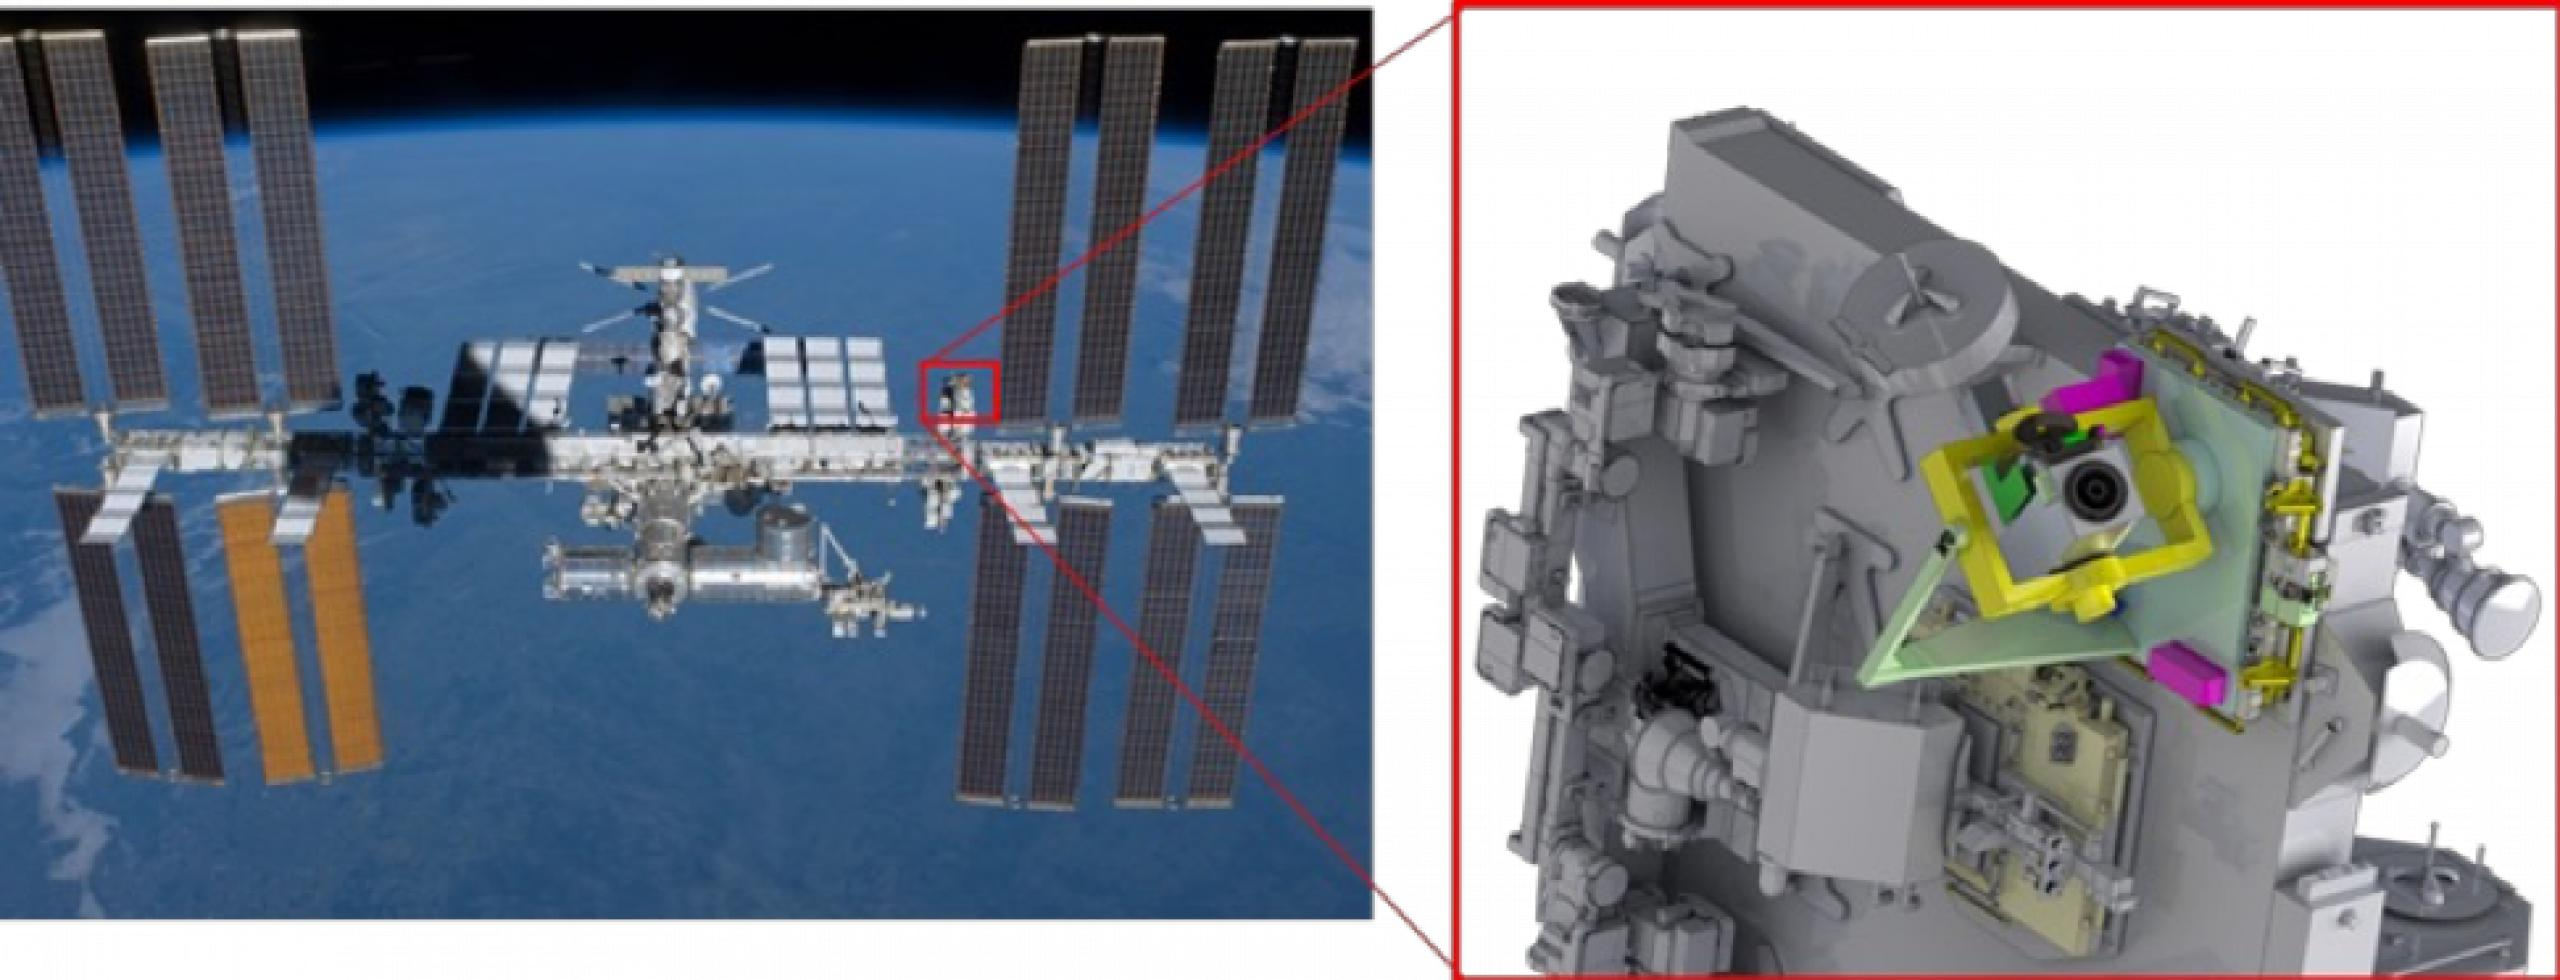 Photo of International Space Station and a model of CODEX coronograph